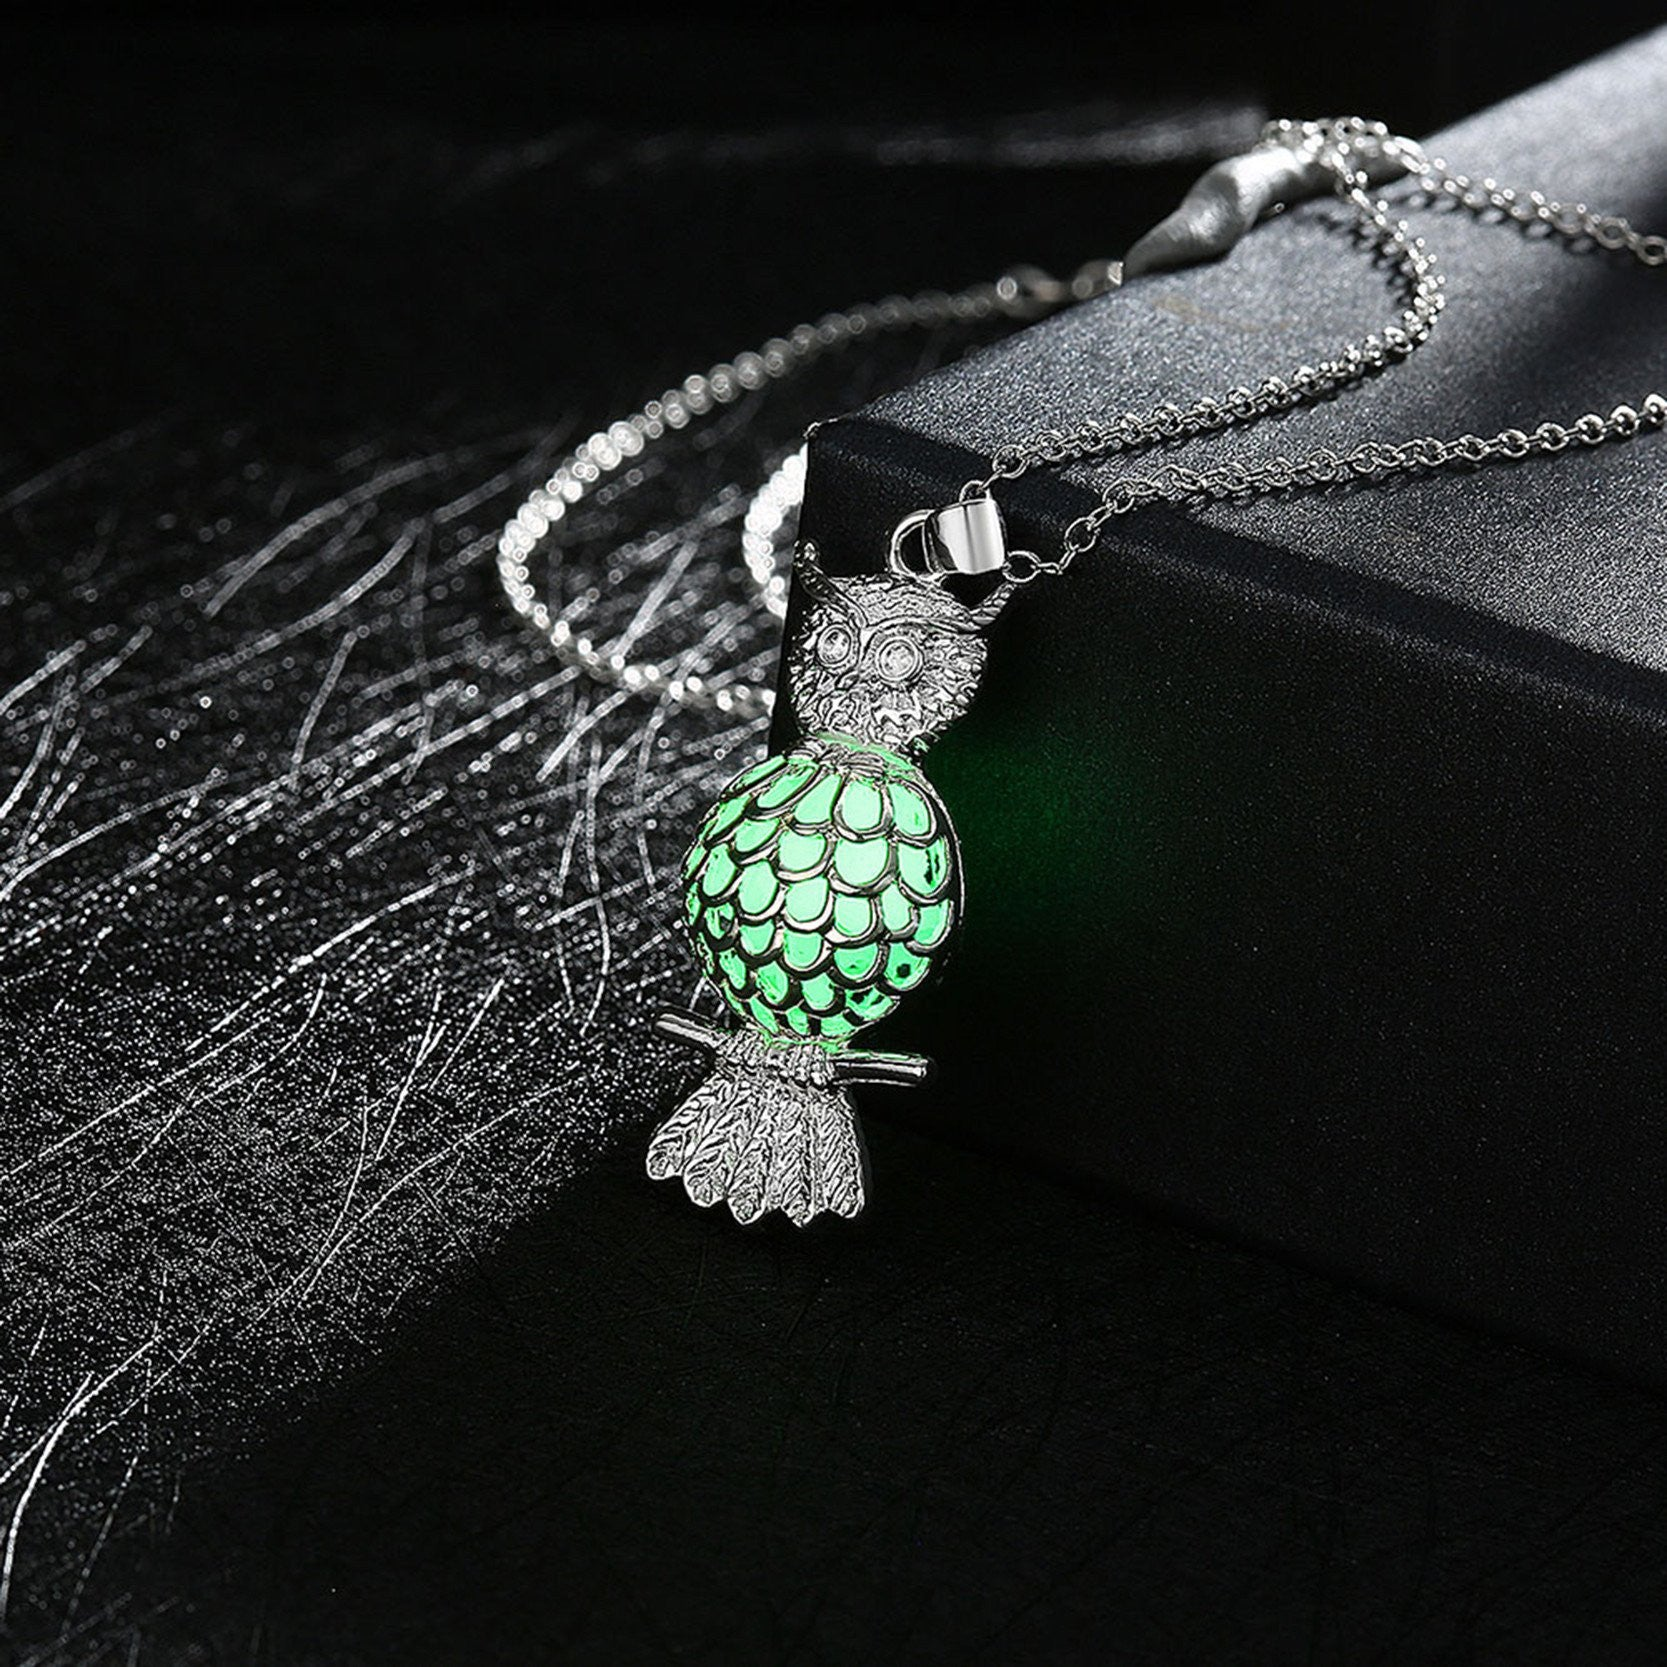 stone necklaces from gift water charm rinhoo necklace women for dark glow item pendant the romantic drop jewelry glowing pendants in frozen